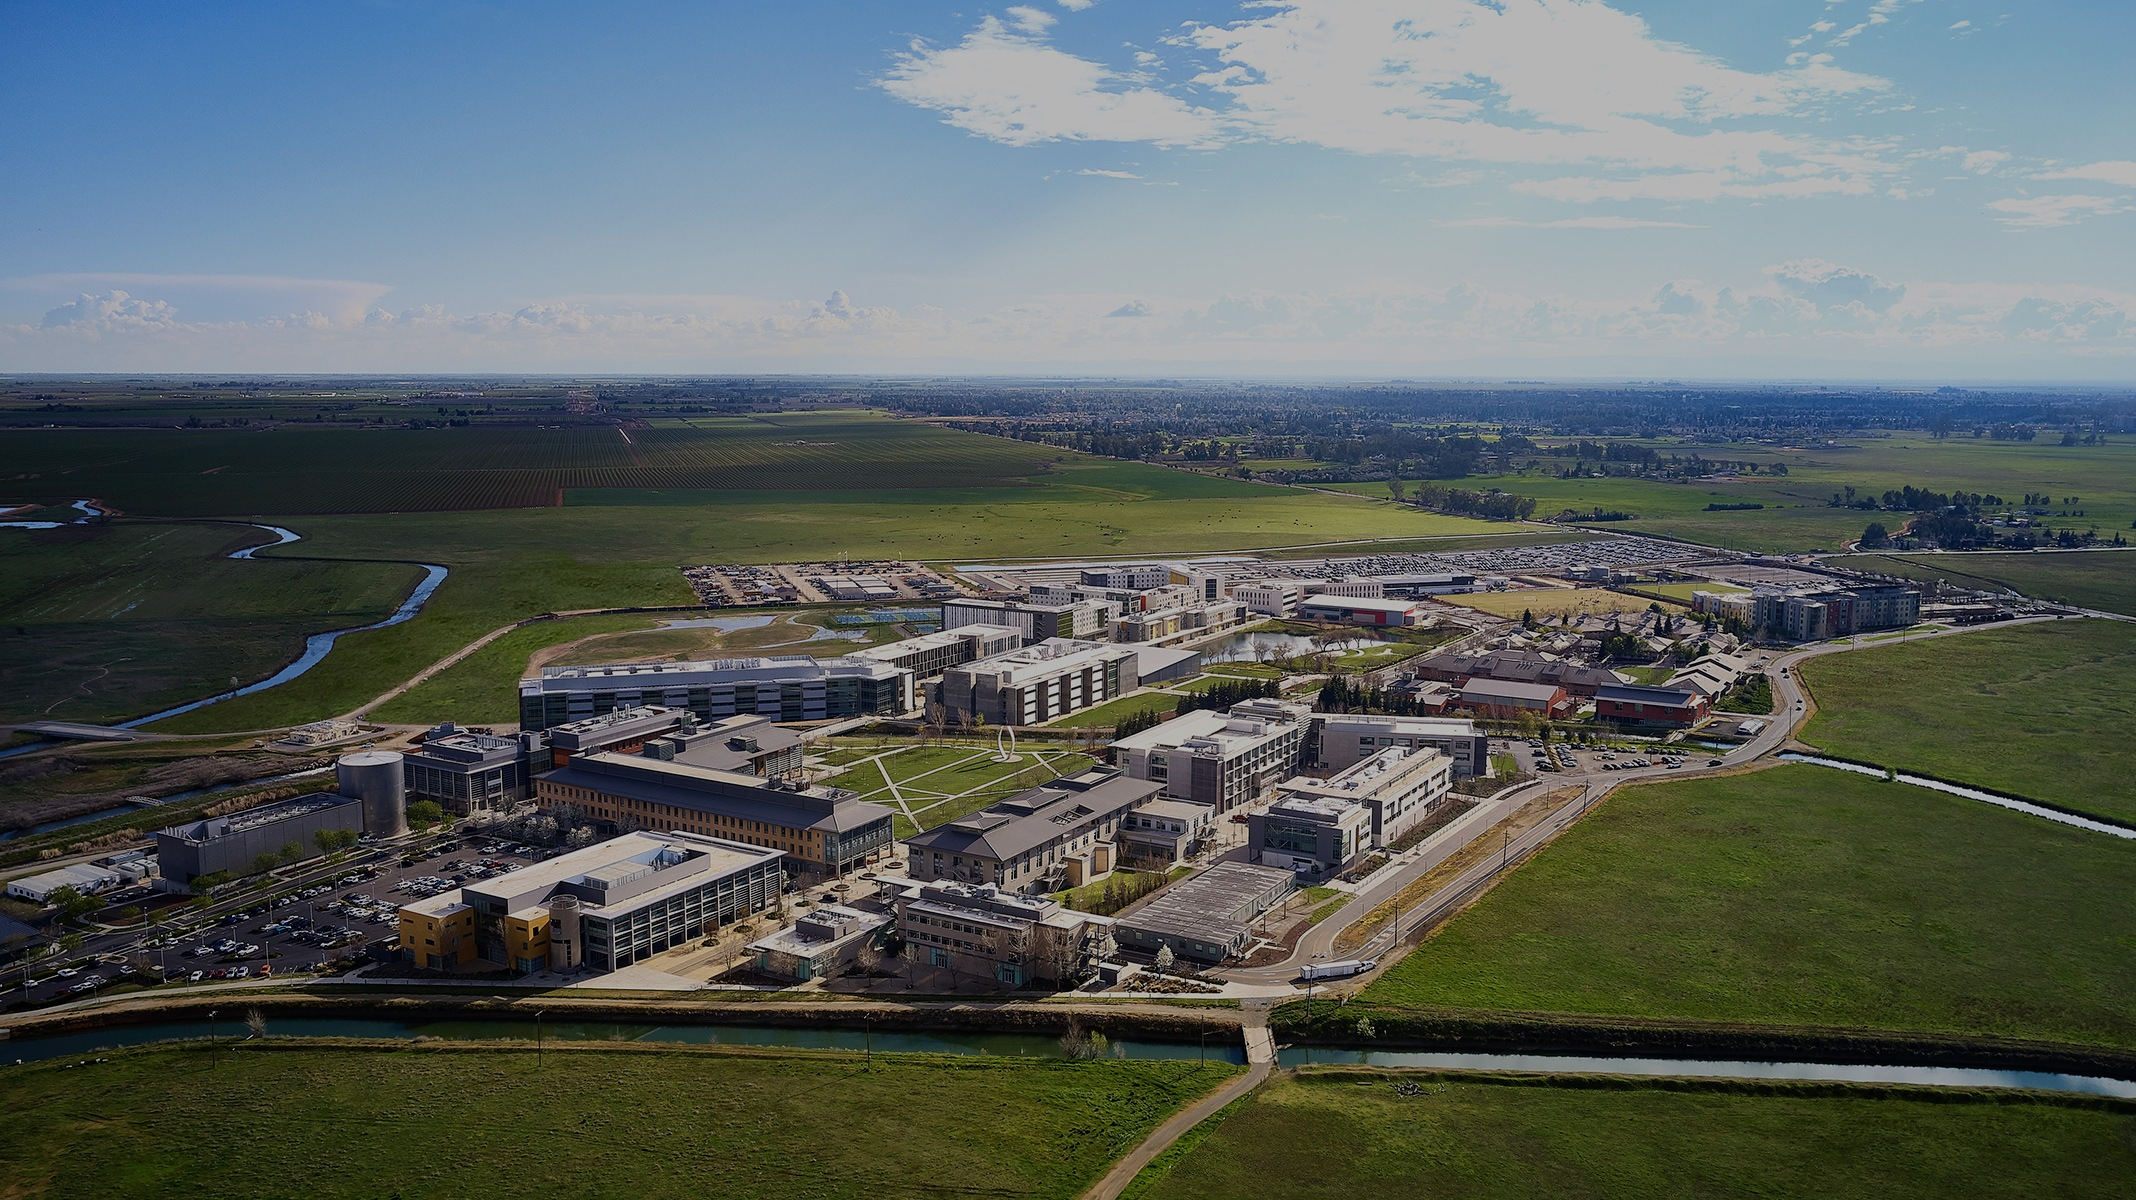 UC Merced 2020 Expansion